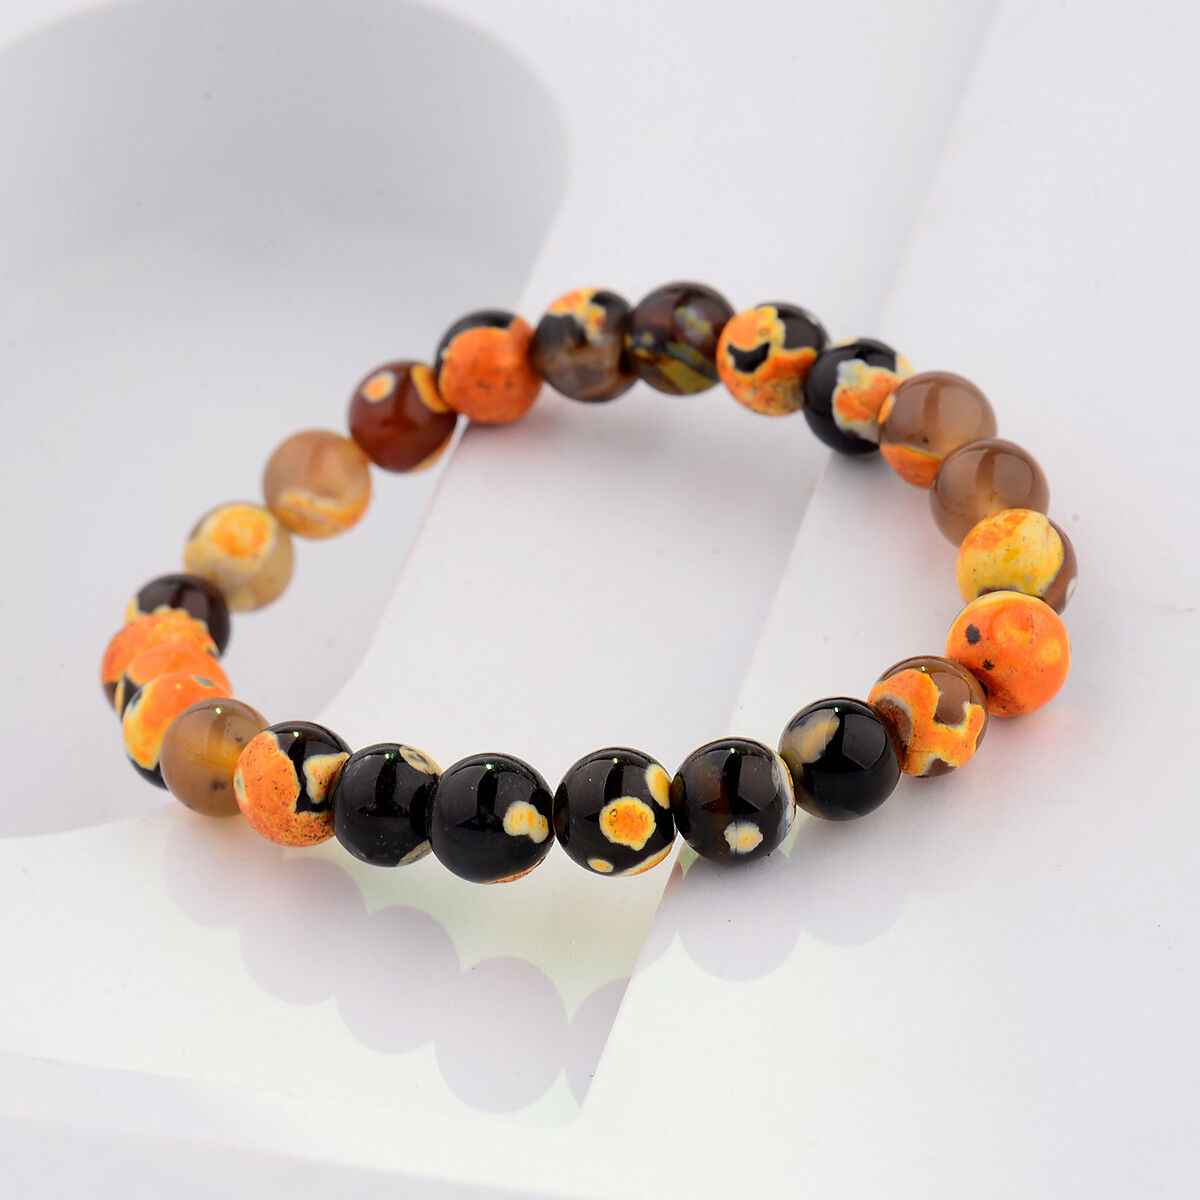 Colourful Stone beads style 3